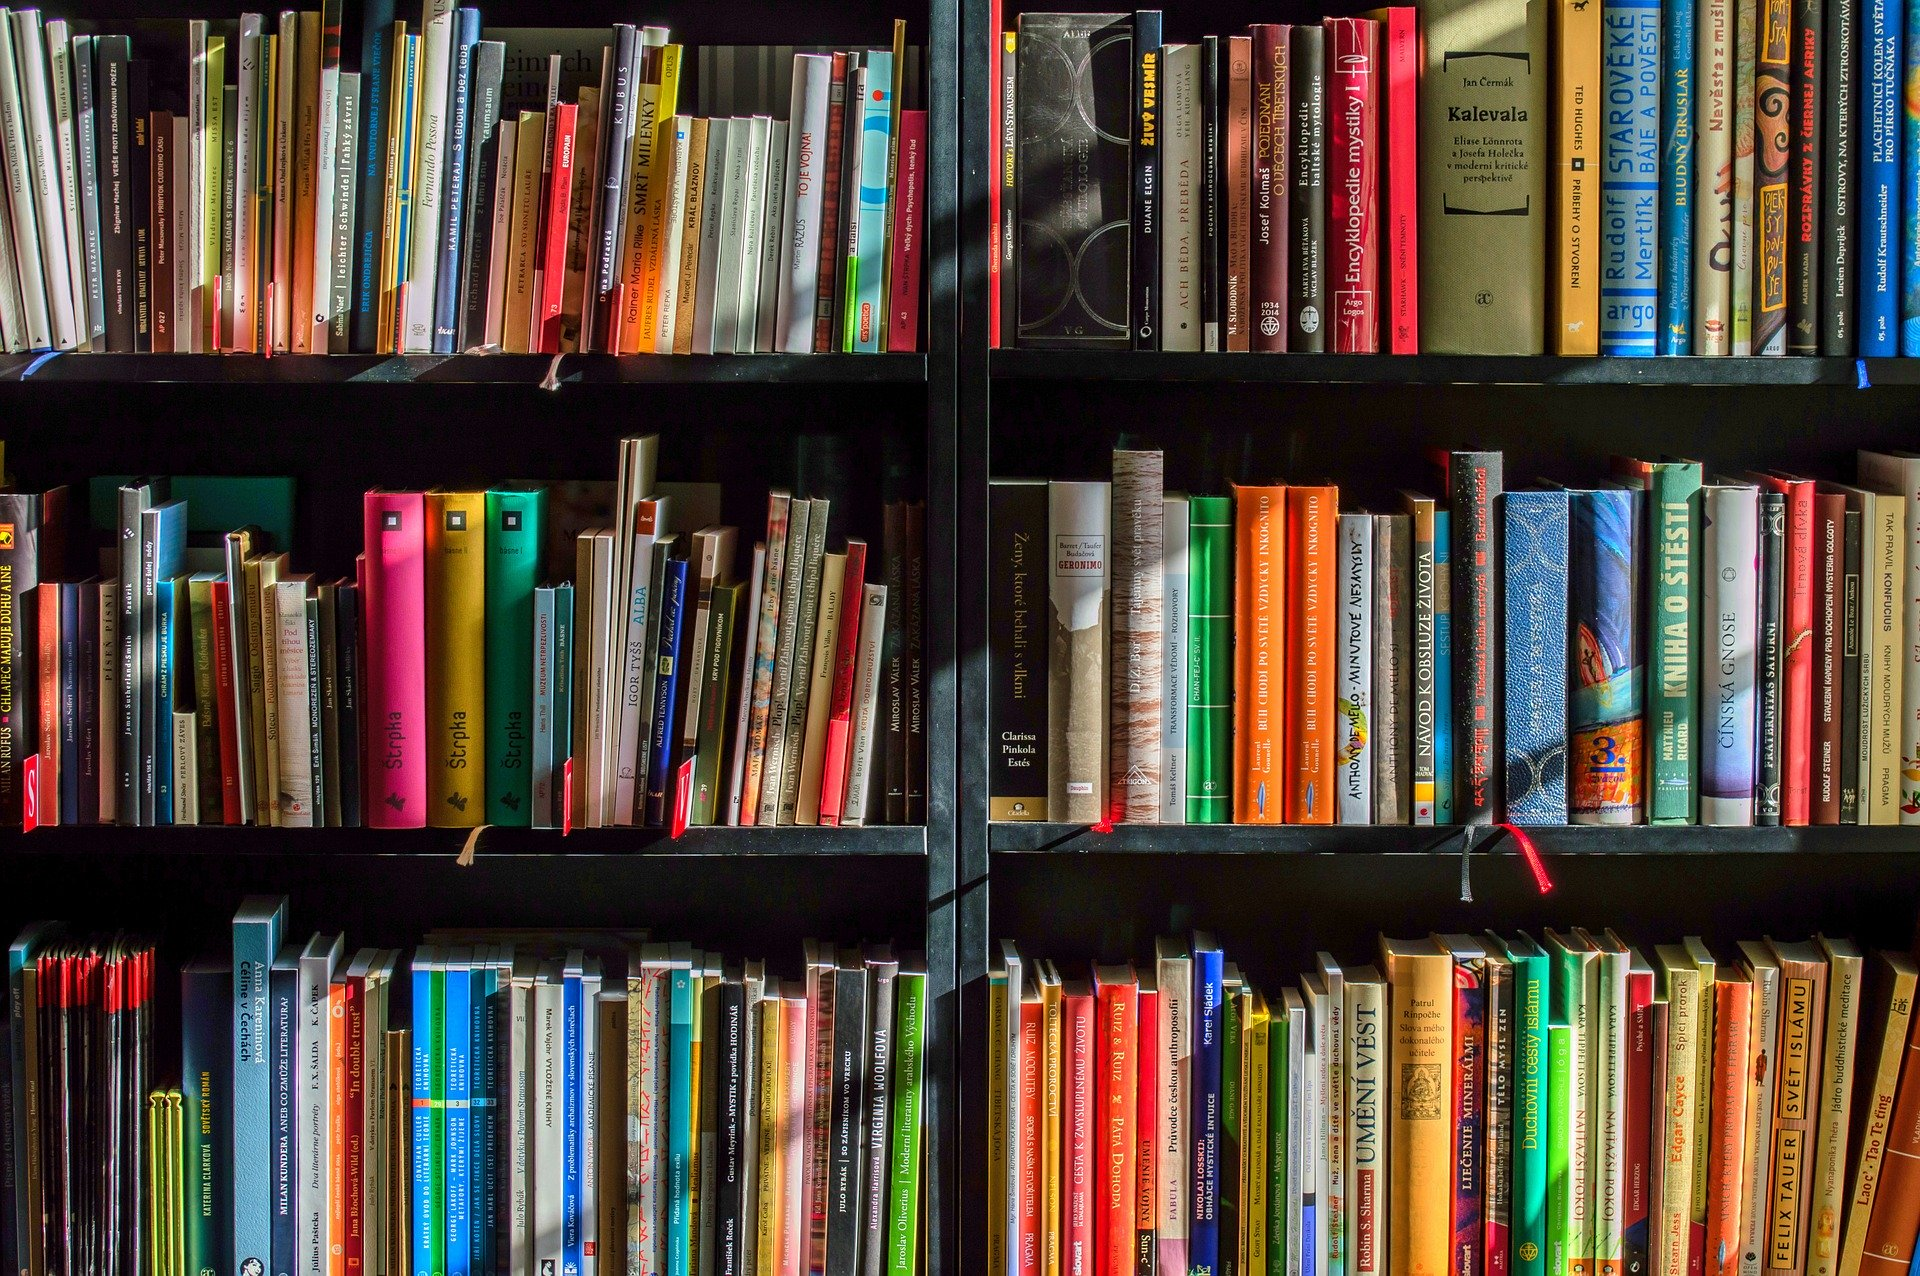 Black bookshelf with lots of colorful books on it.